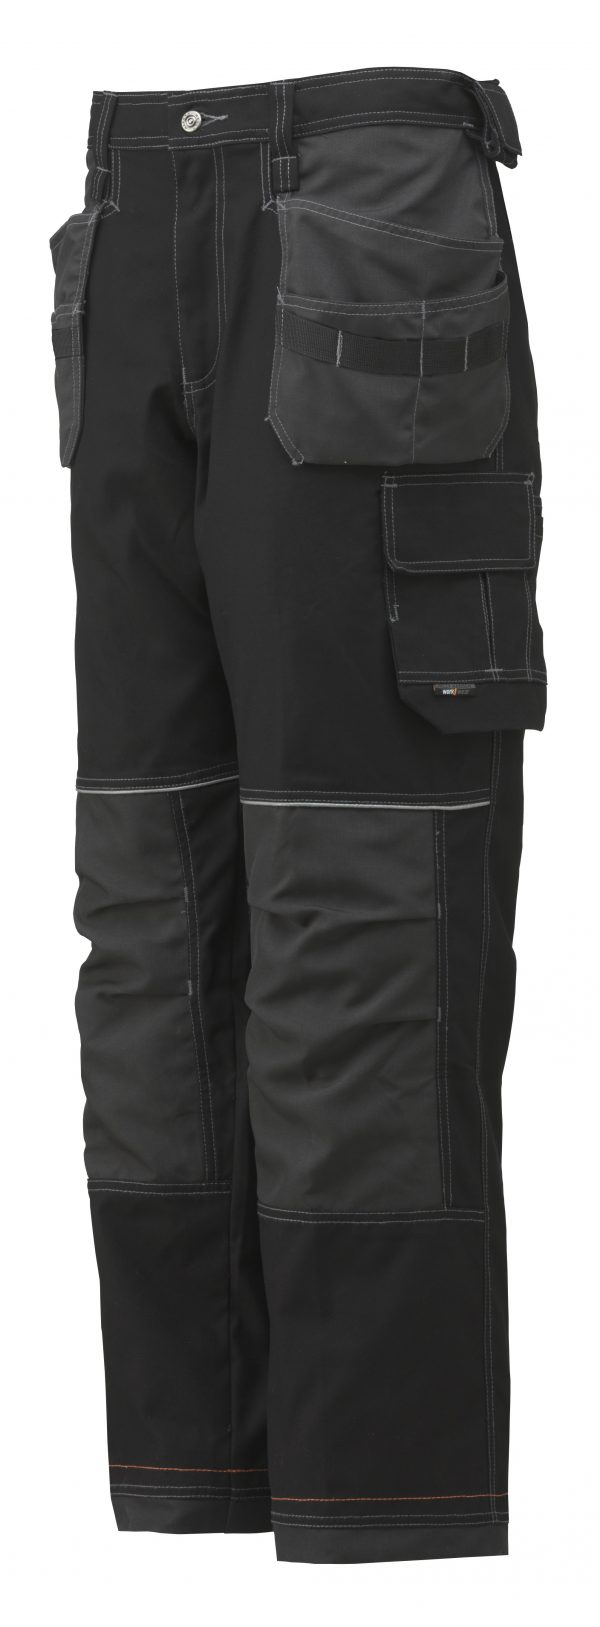 77488 Helly Hansen Workwear Men's Chelsea Insulated Construction Pants w/ Hanging Pockets, Extendable Leg, Cordura® Reinforcement & YKK® Zipper